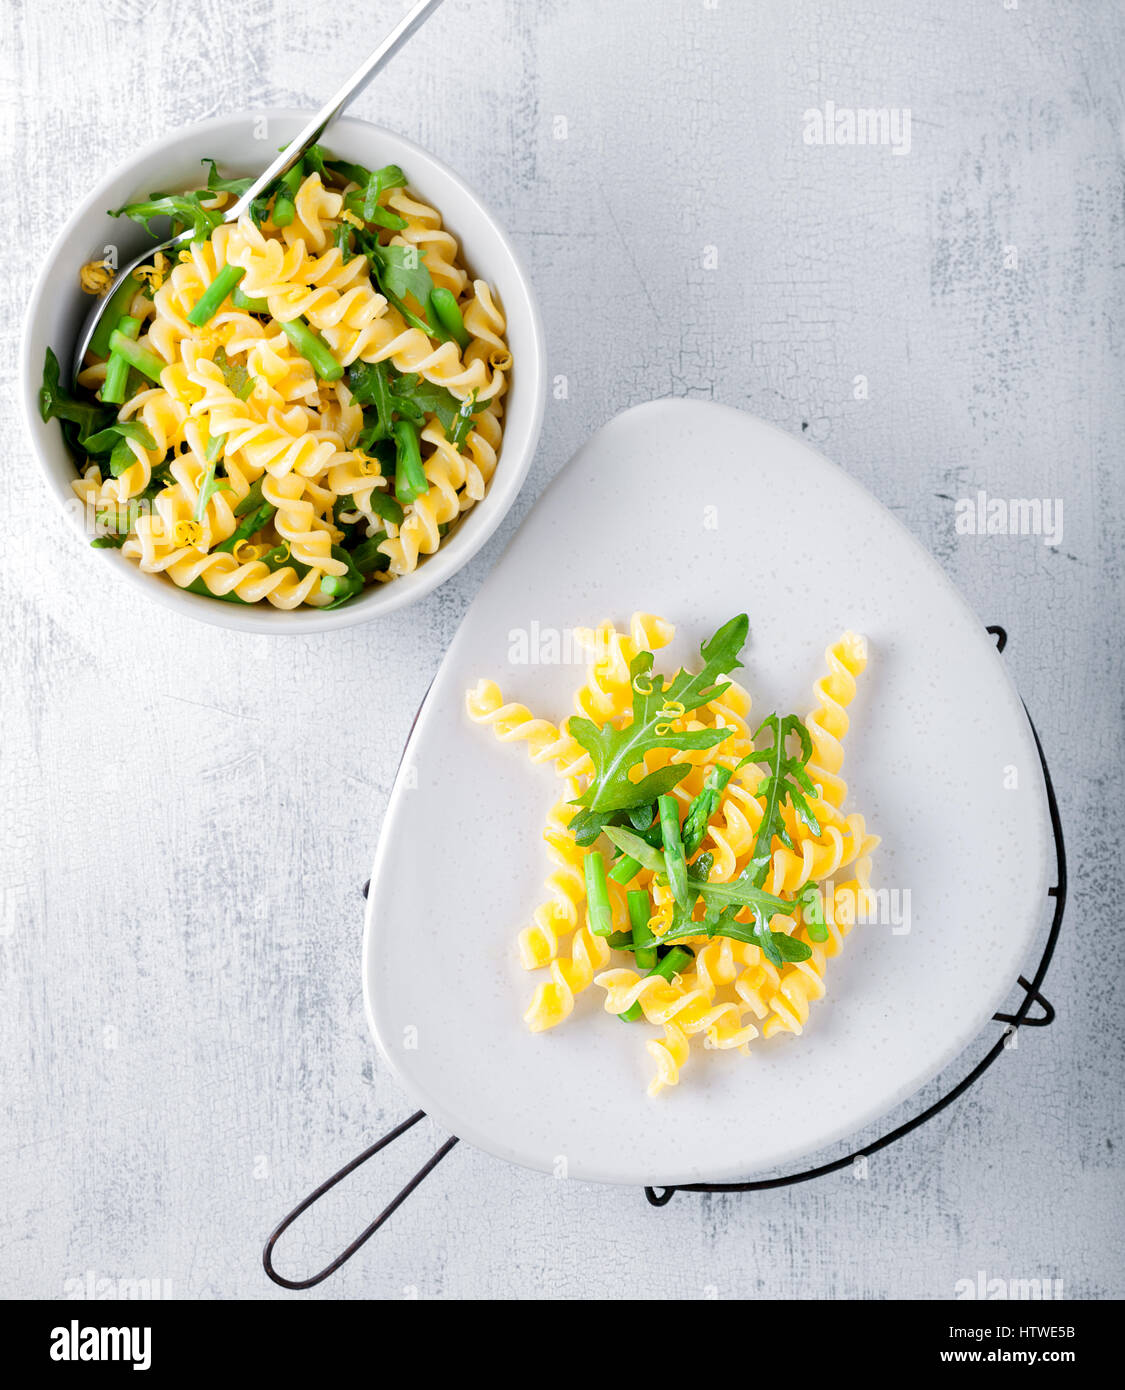 Pasta salad with asparagus and arugula - Stock Image